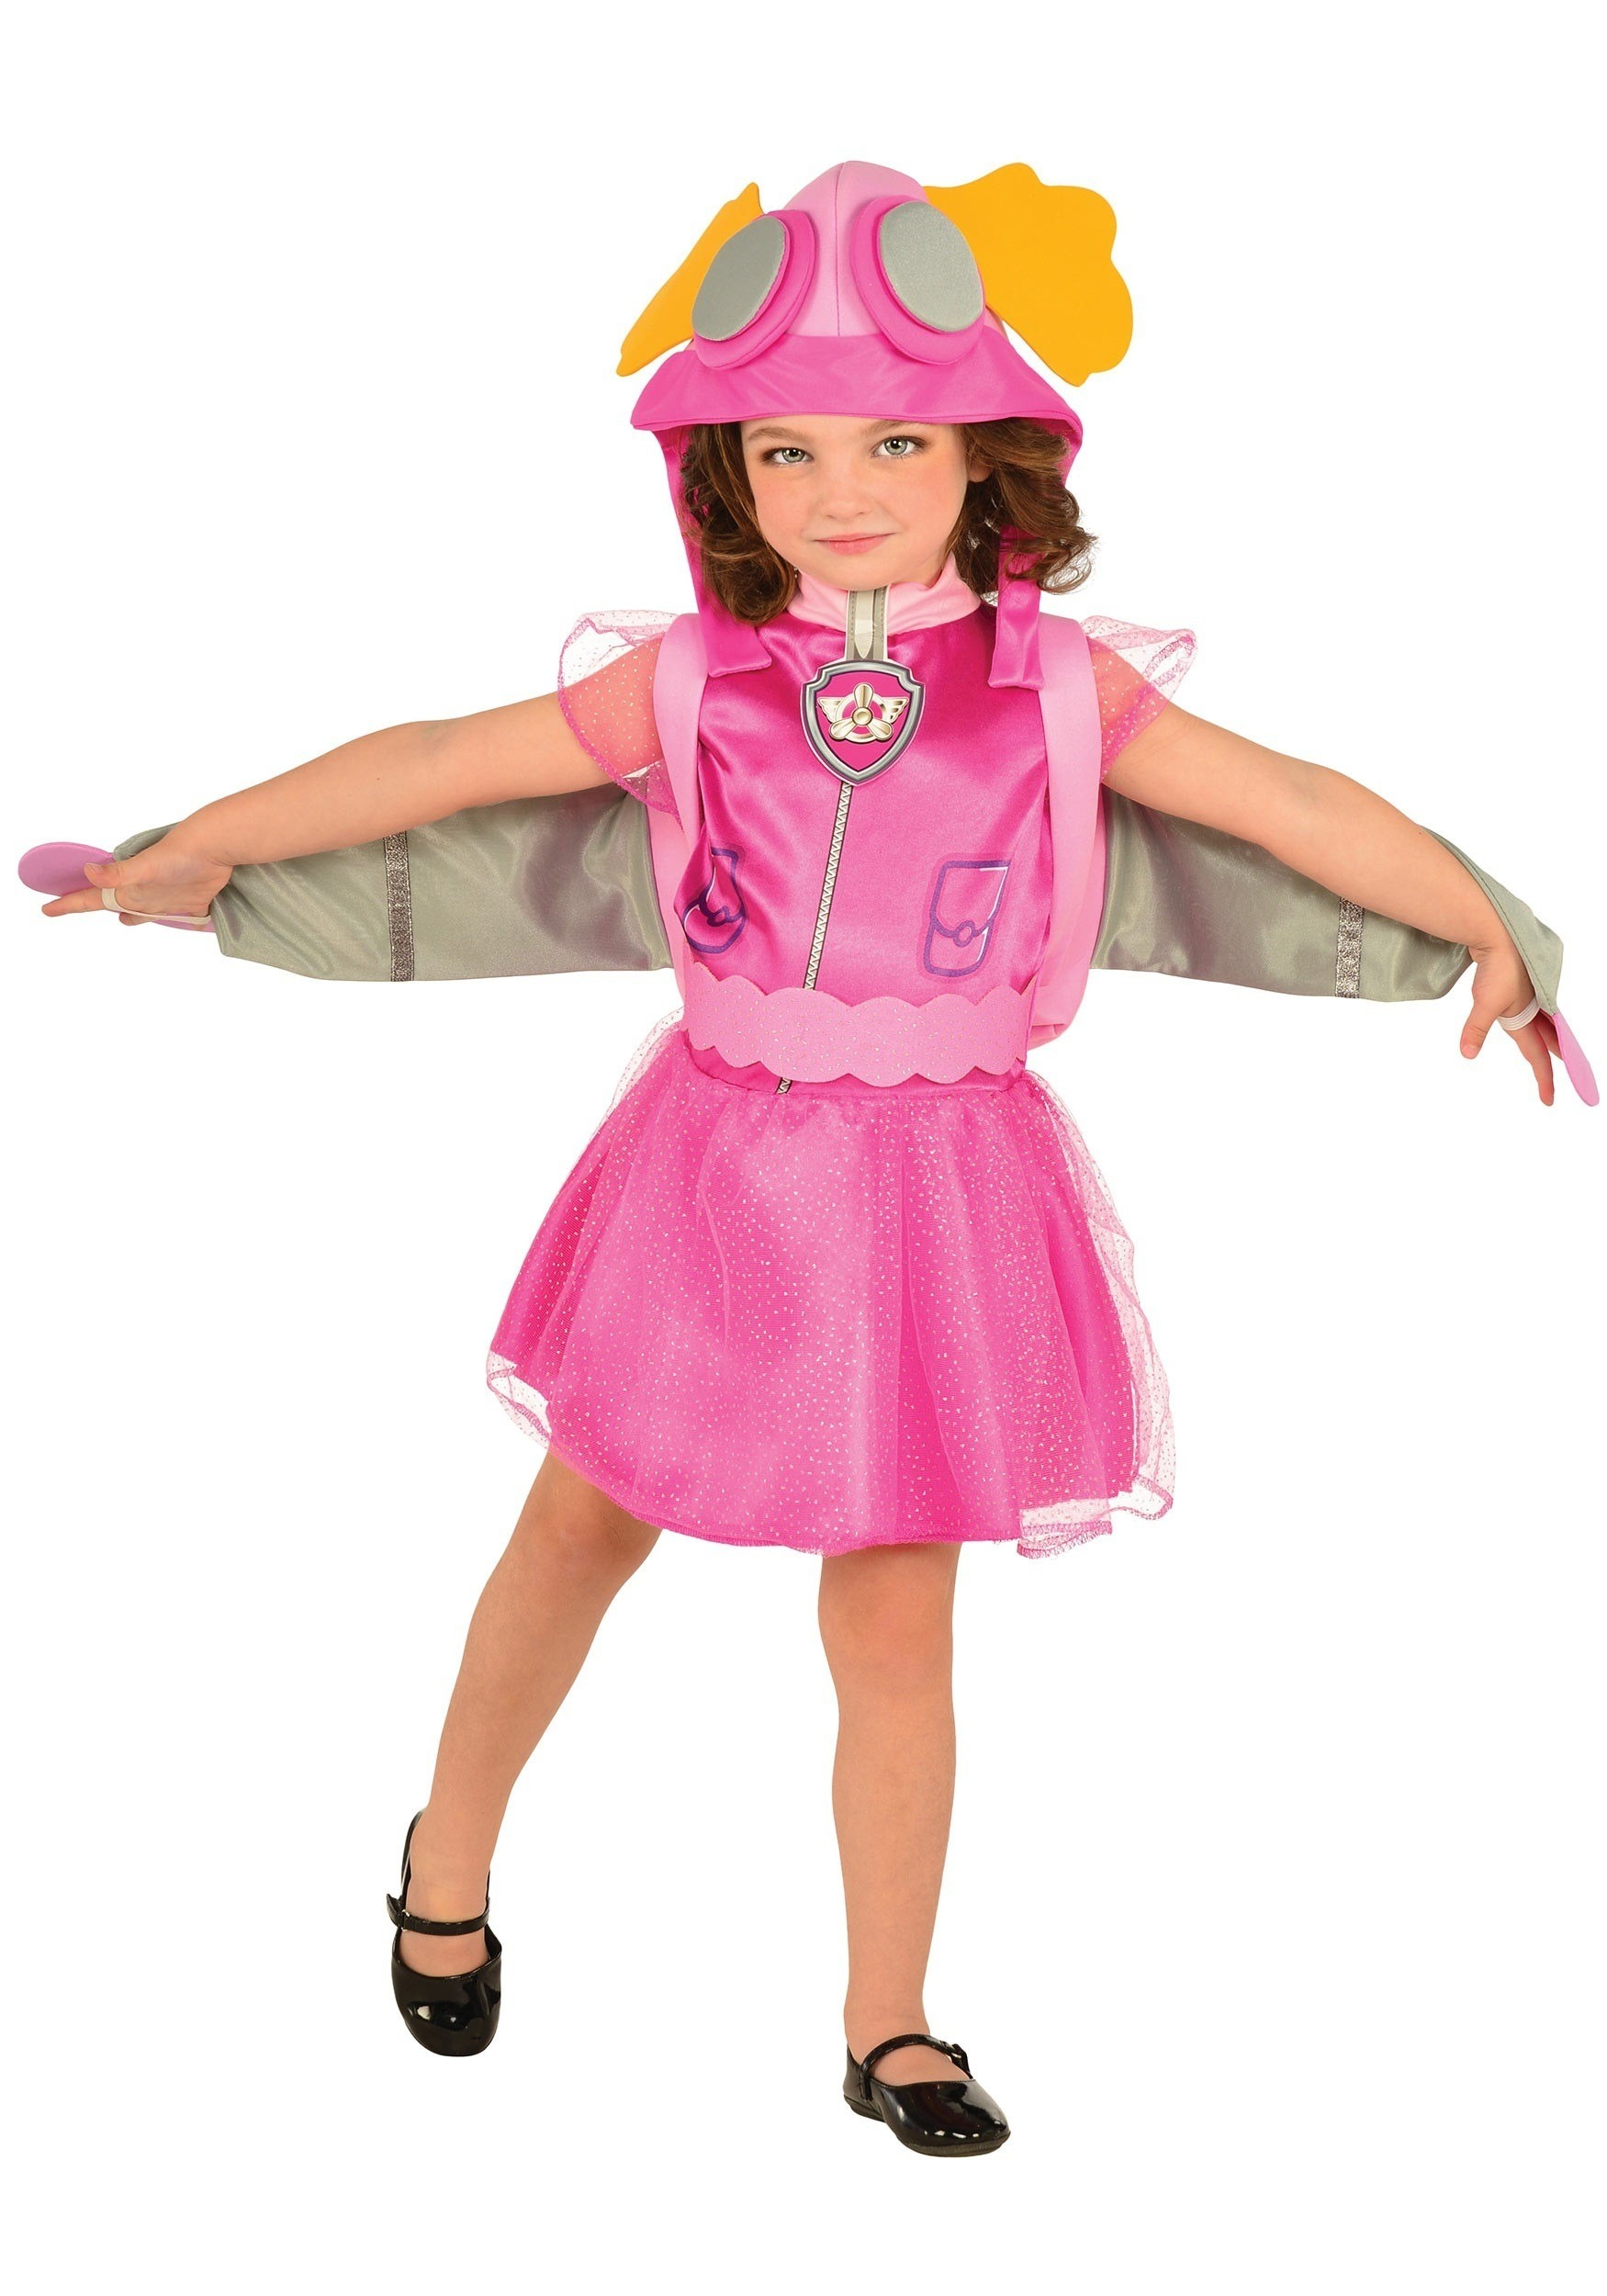 Nickelodeon Paw Patrol Halloween Costumes For Kids